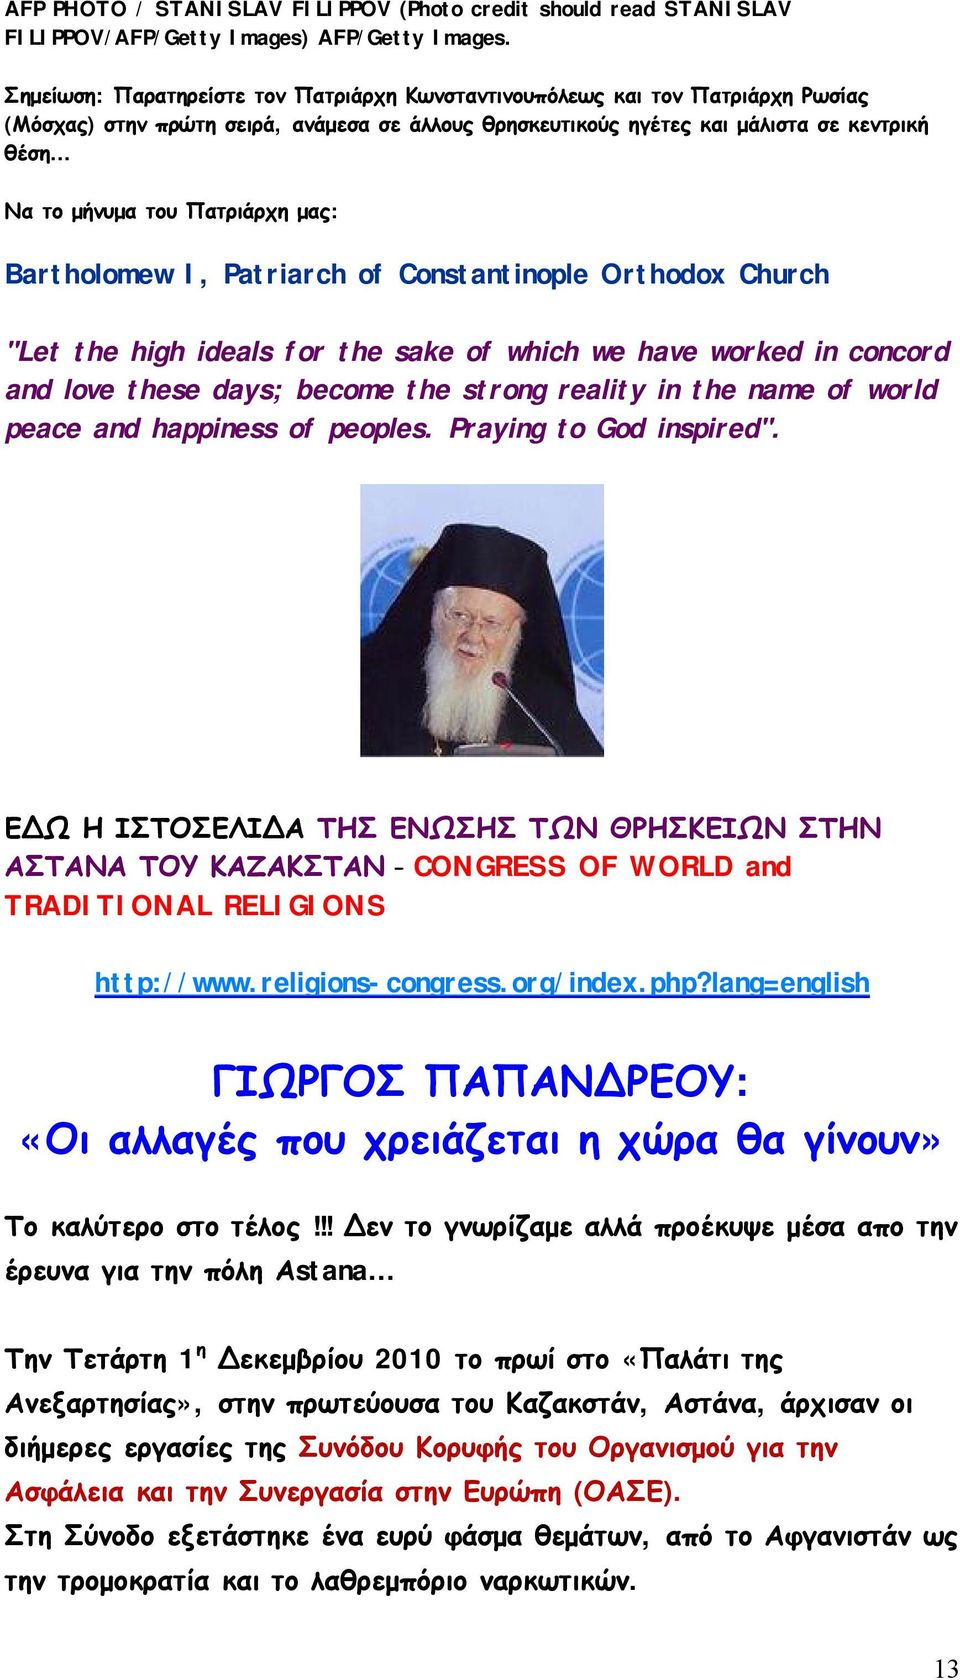 "Πατριάρχη μας: Bartholomew I, Patriarch of Constantinople Orthodox Church ""Let the high ideals for the sake of which we have worked in concord and love these days; become the strong reality in the"